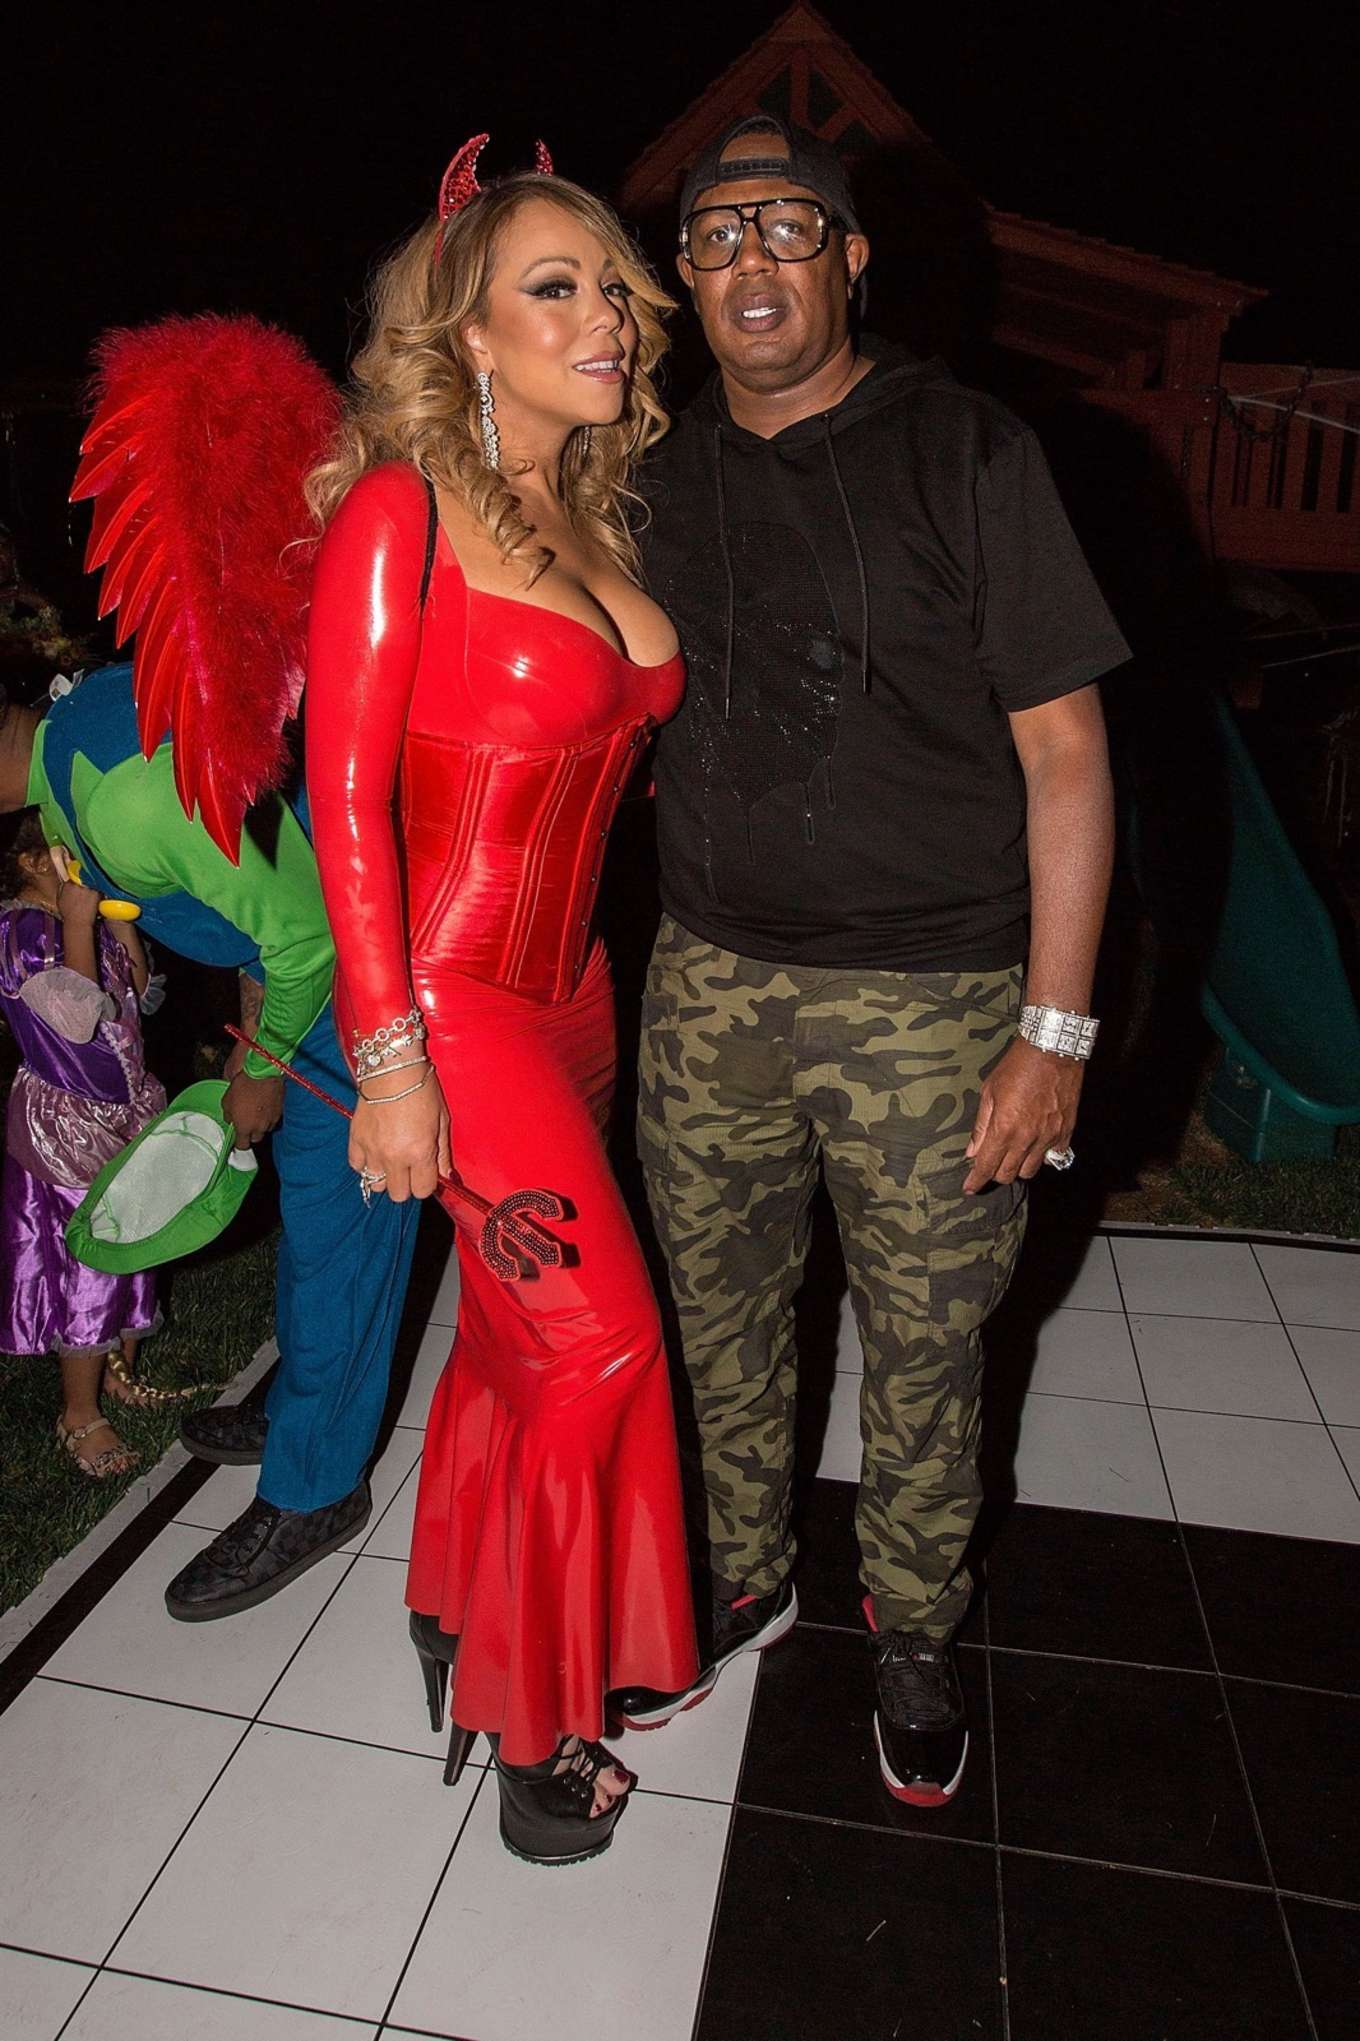 Mariah Carey in Red at Hollywood Halloween Party -01 - GotCeleb